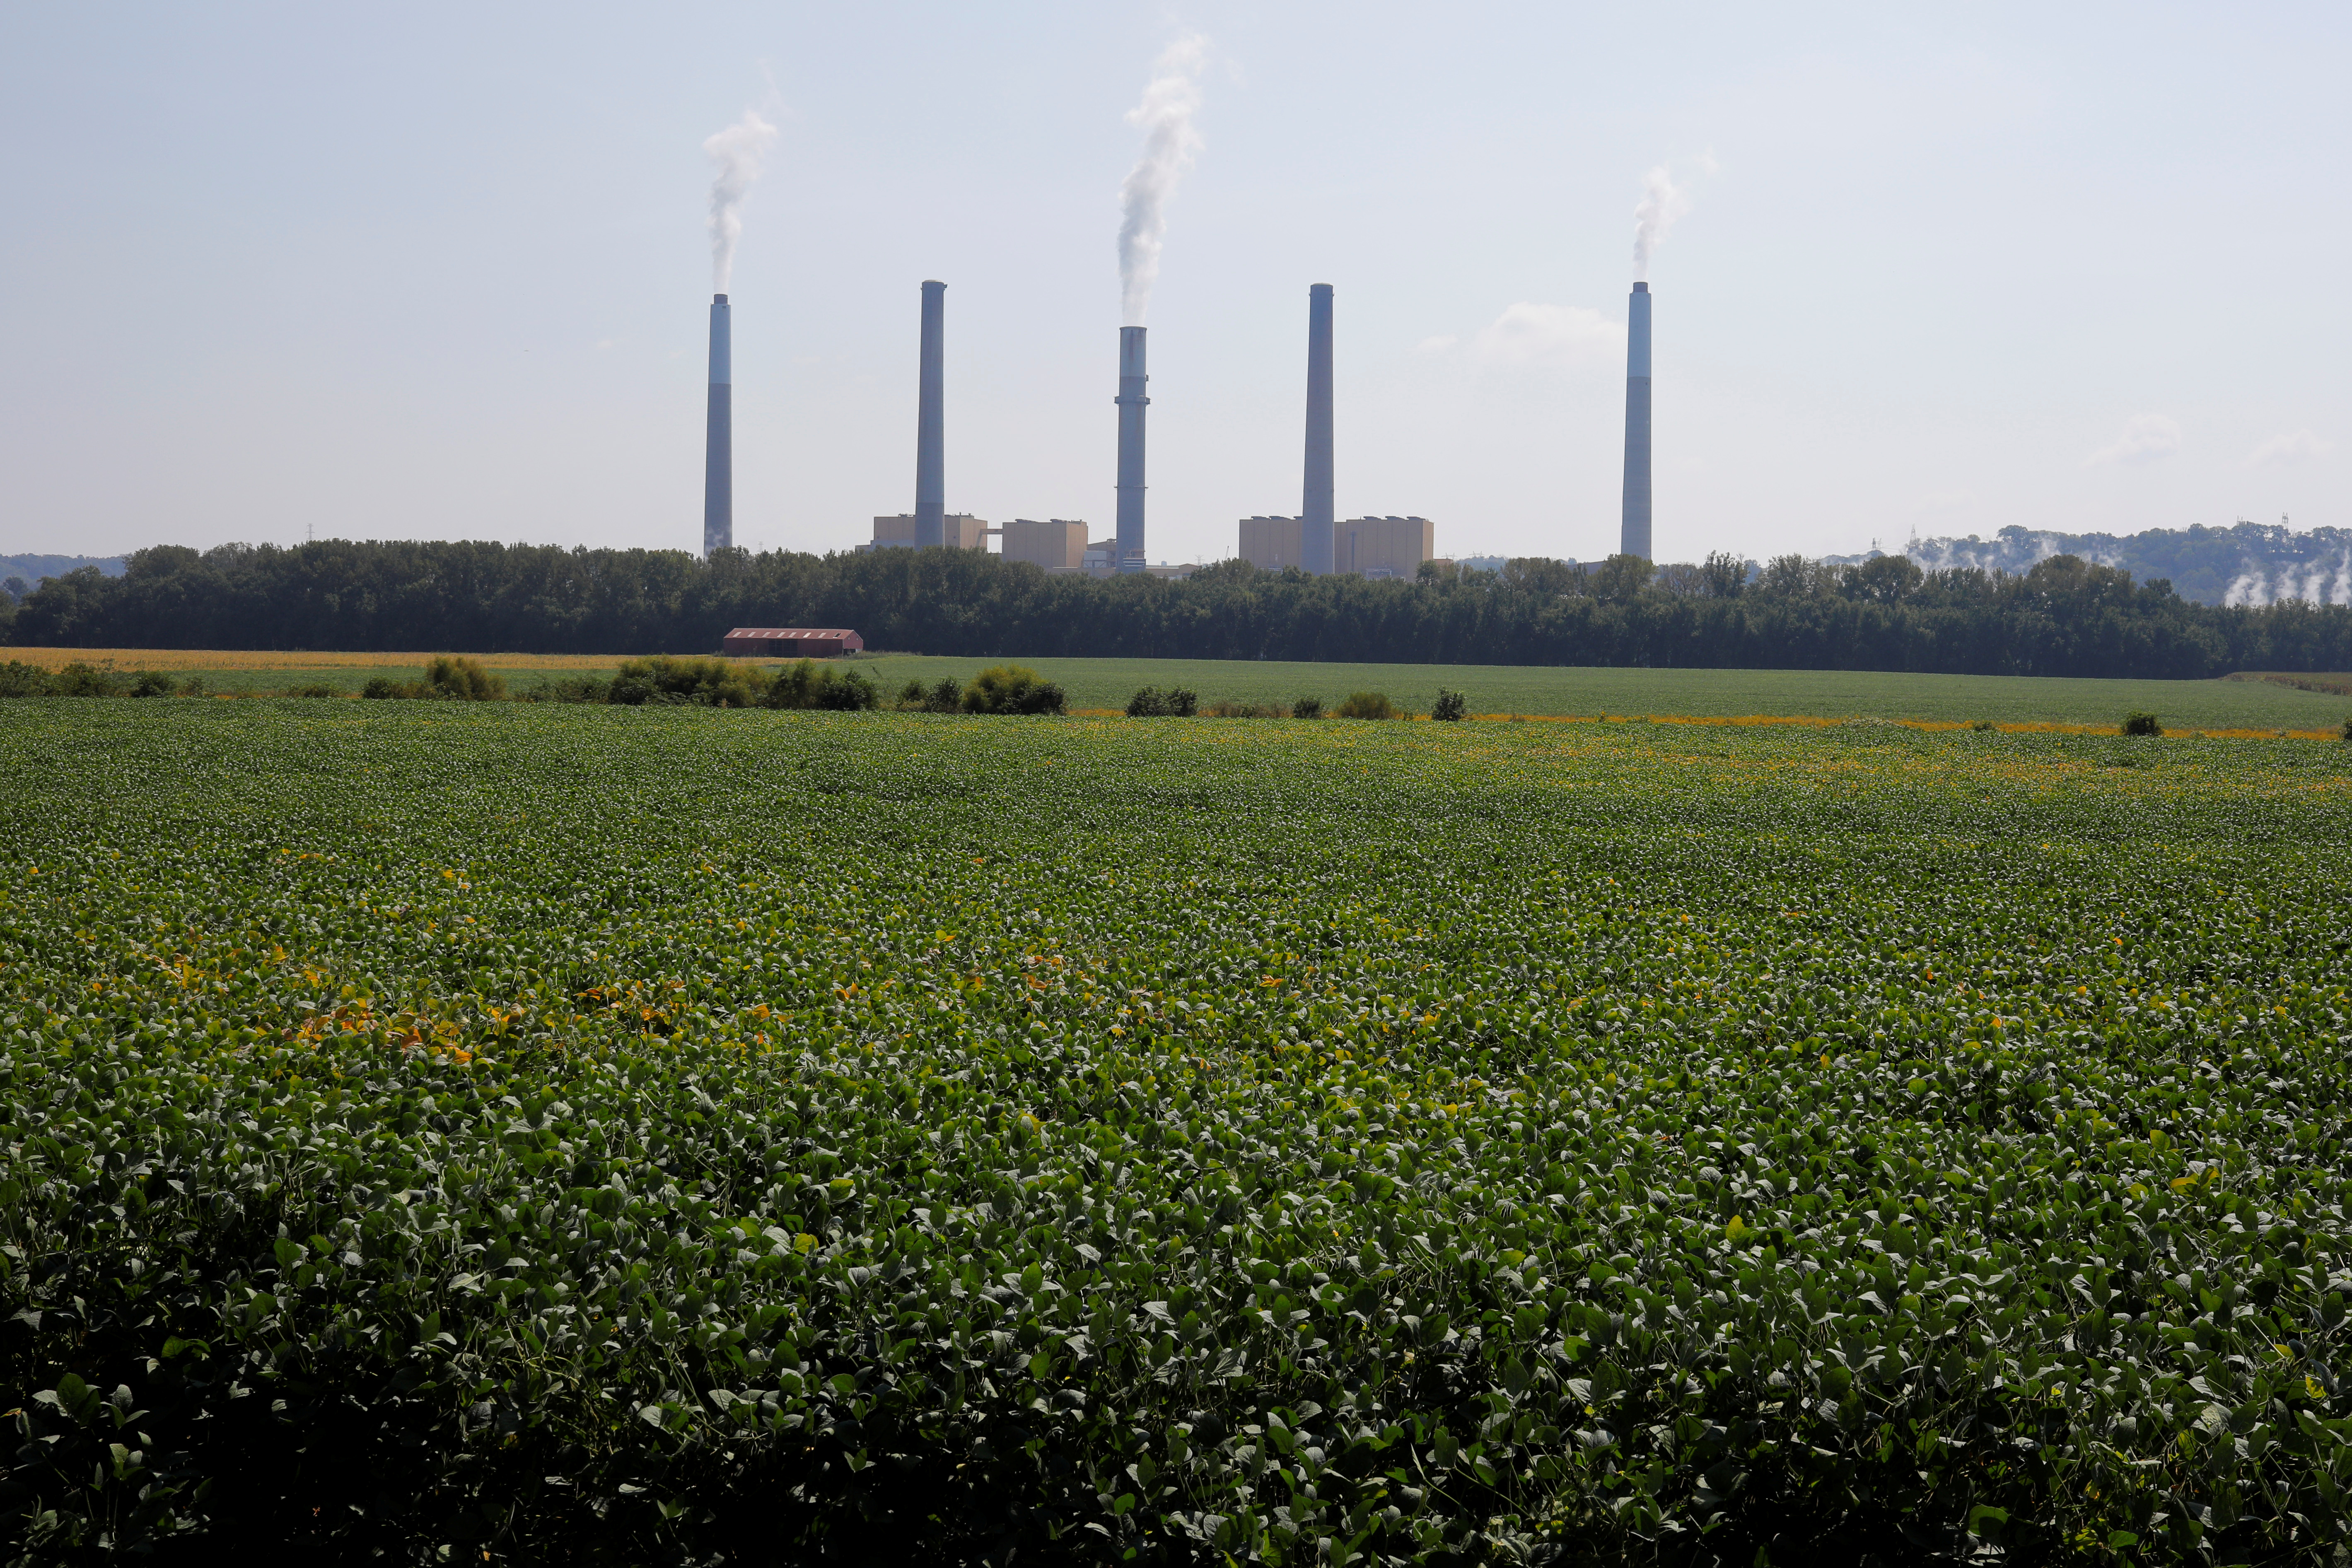 Soybeans grow in front of the Kentucky Utilities Ghent Generating Station, a coal-fired power-plant, along the Ohio River in Vevay